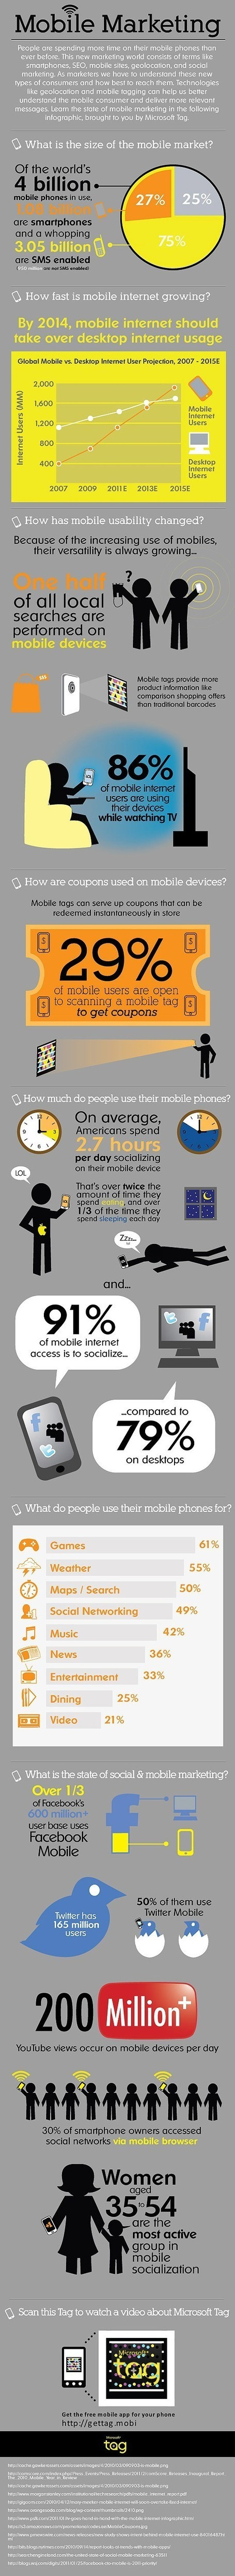 The Mobile Social Audience is Evolving - Here's What's Happening [Infographic] | Social Media (network, technology, blog, community, virtual reality, etc...) | Scoop.it